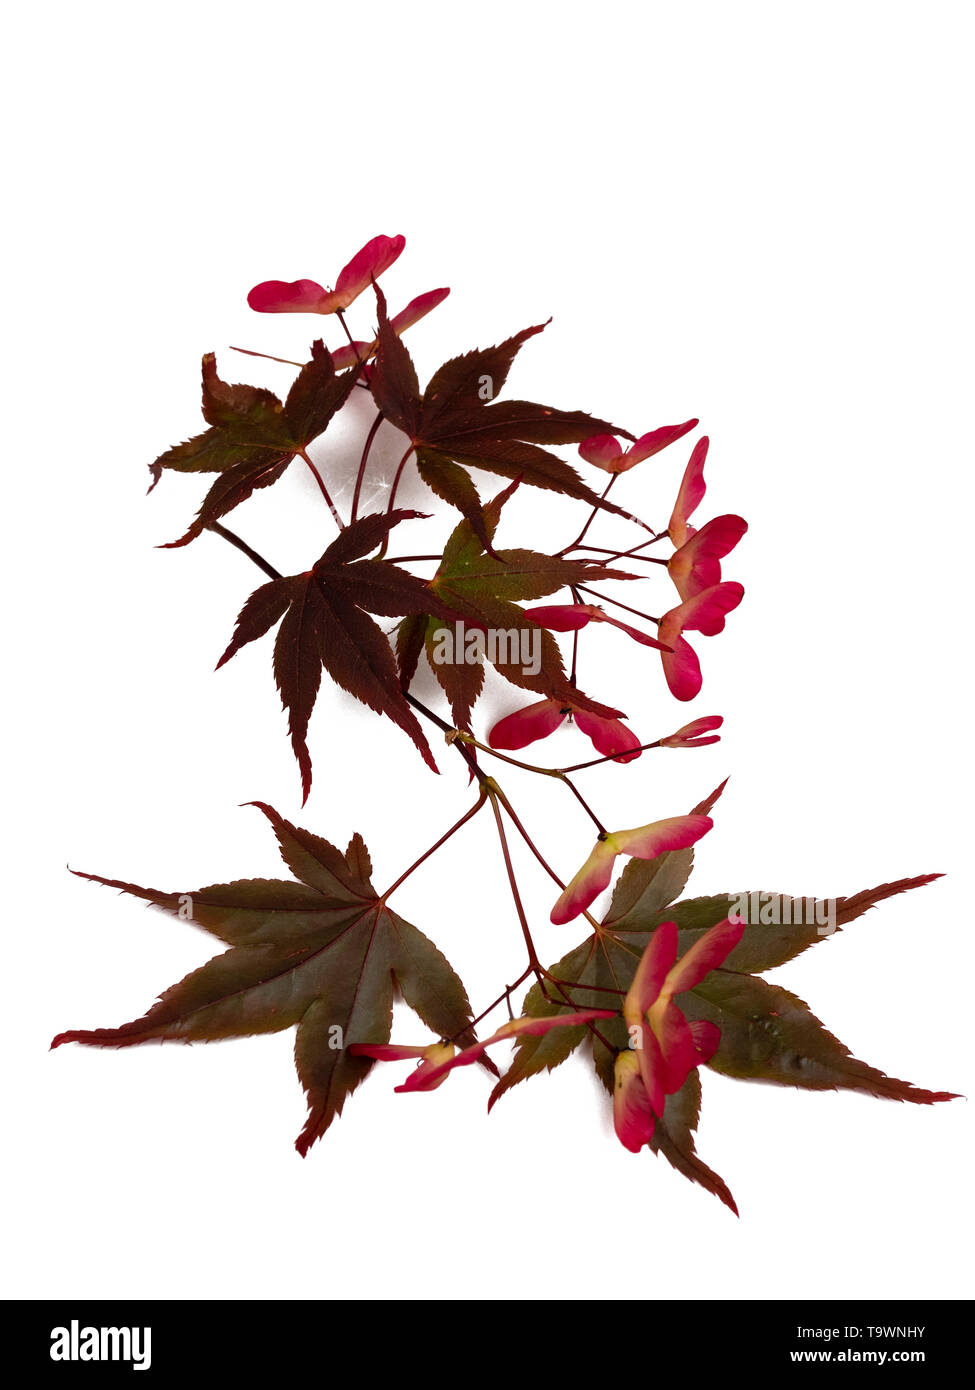 Red winged seeds and red bronze summer foliage of the Japanese maple, Acer palmatum 'Bloodgood', on a white background - Stock Image